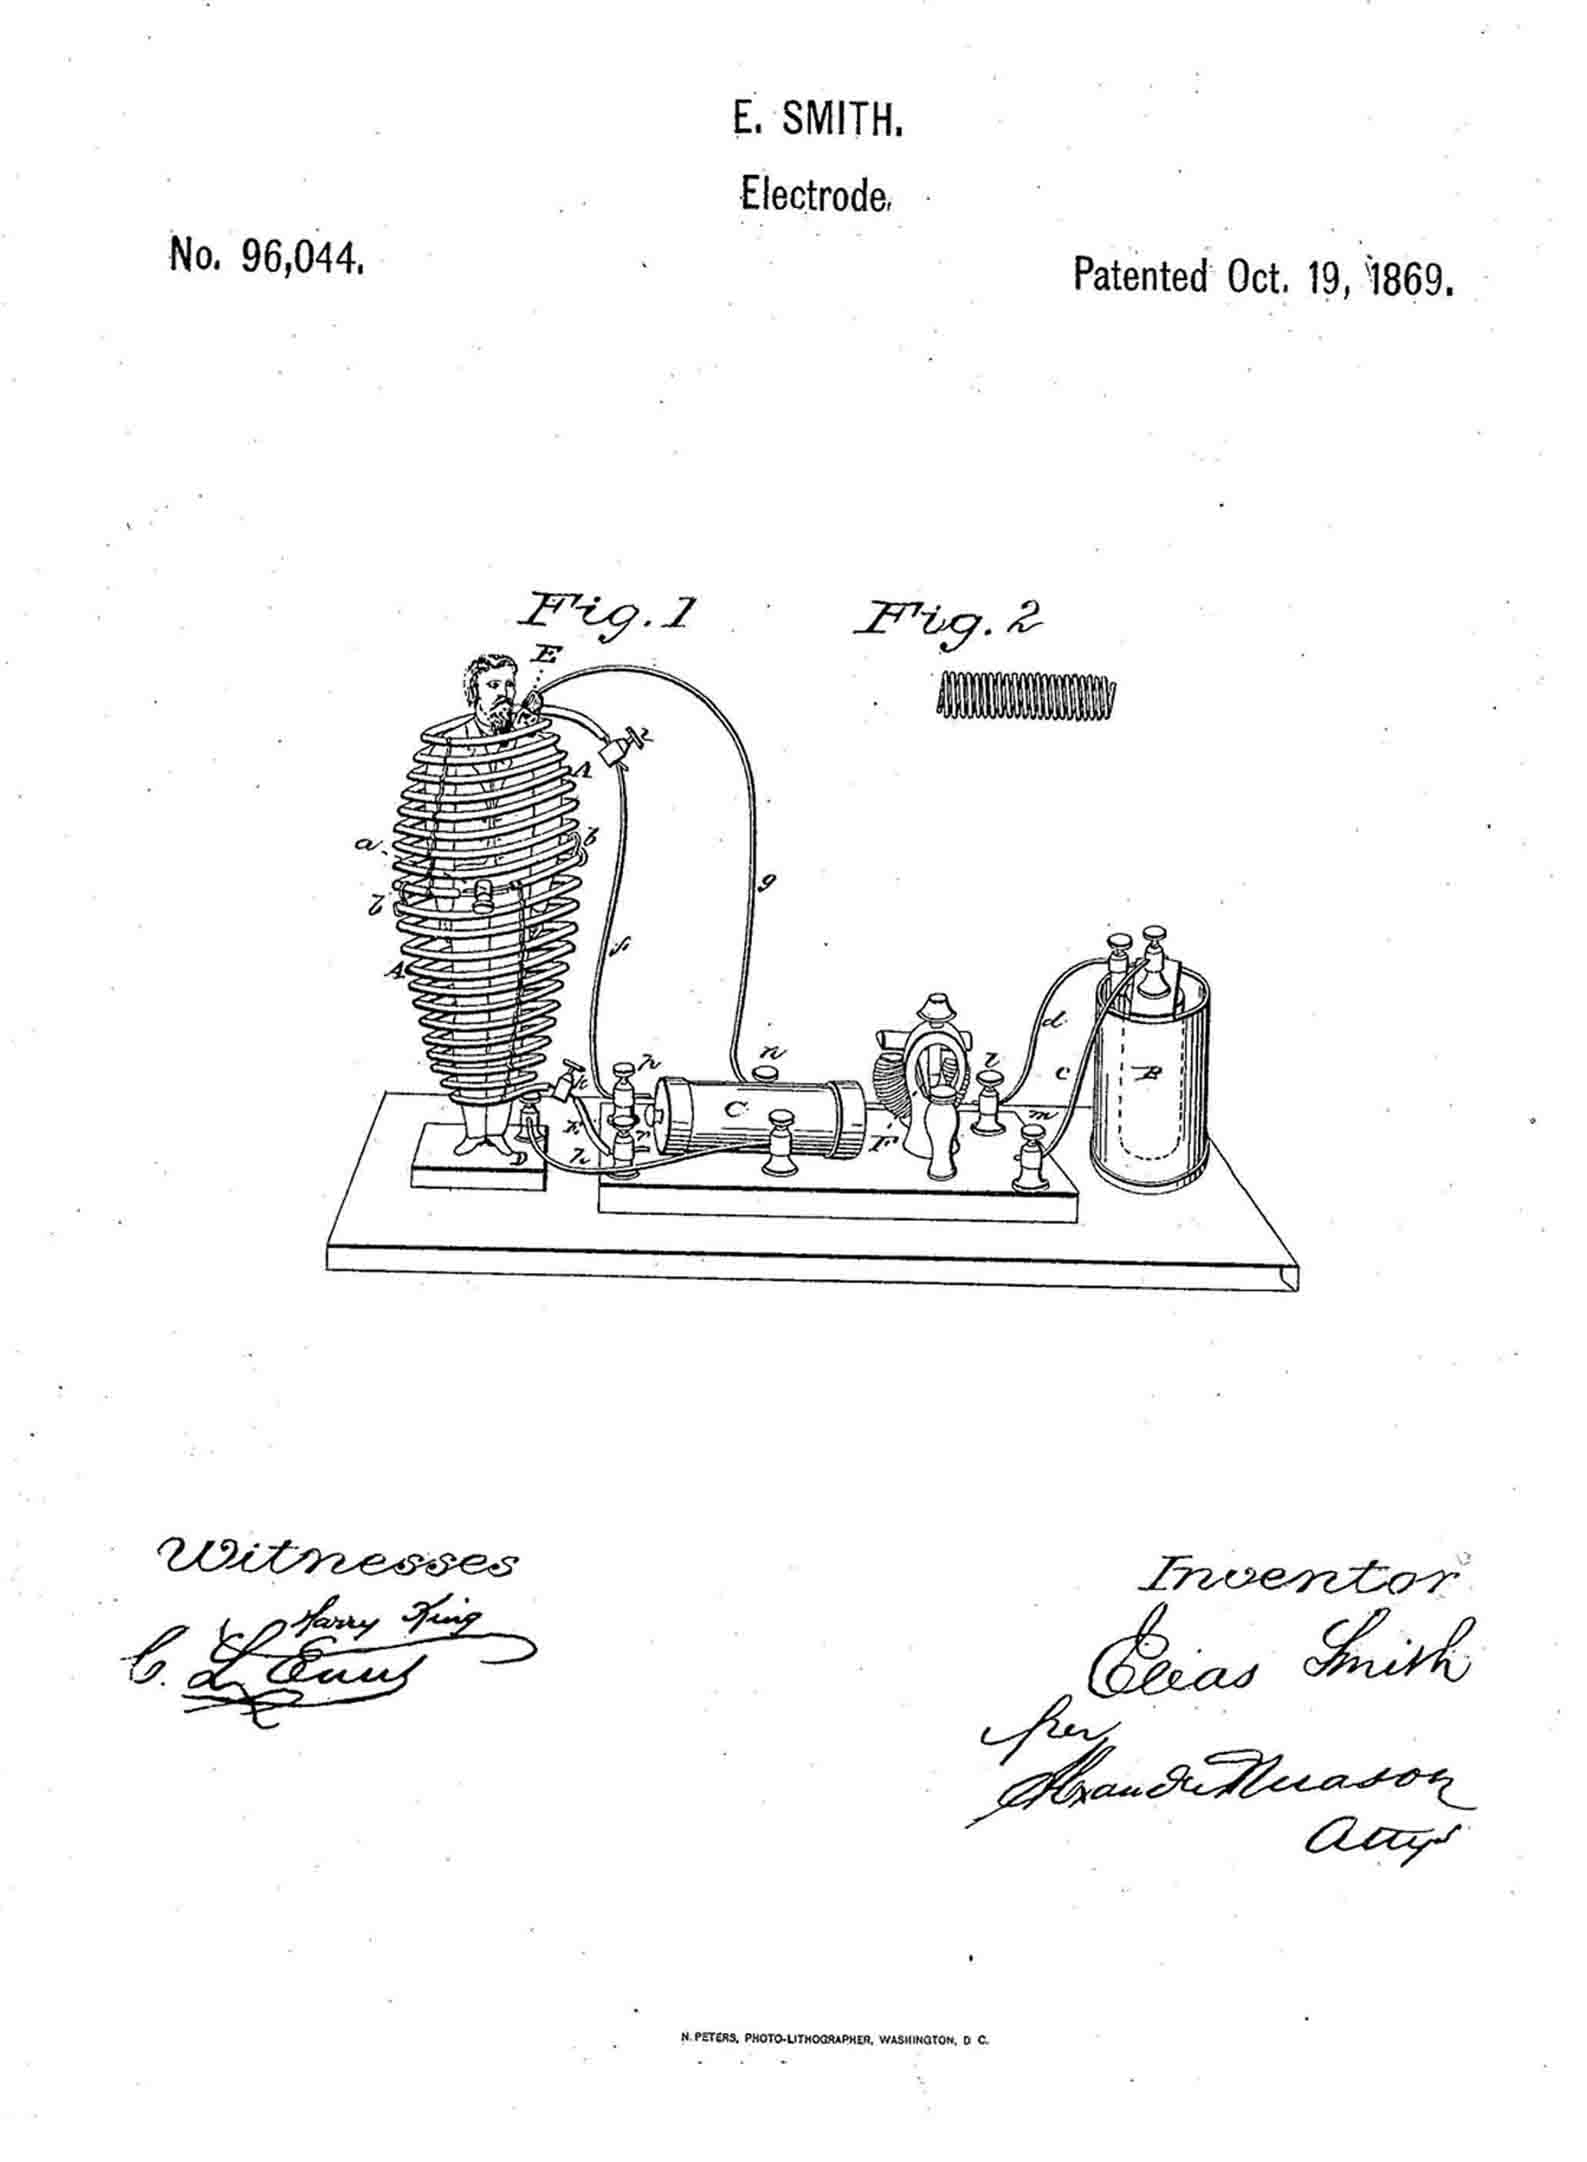 The Elias Smith October 19, 1869 Patent